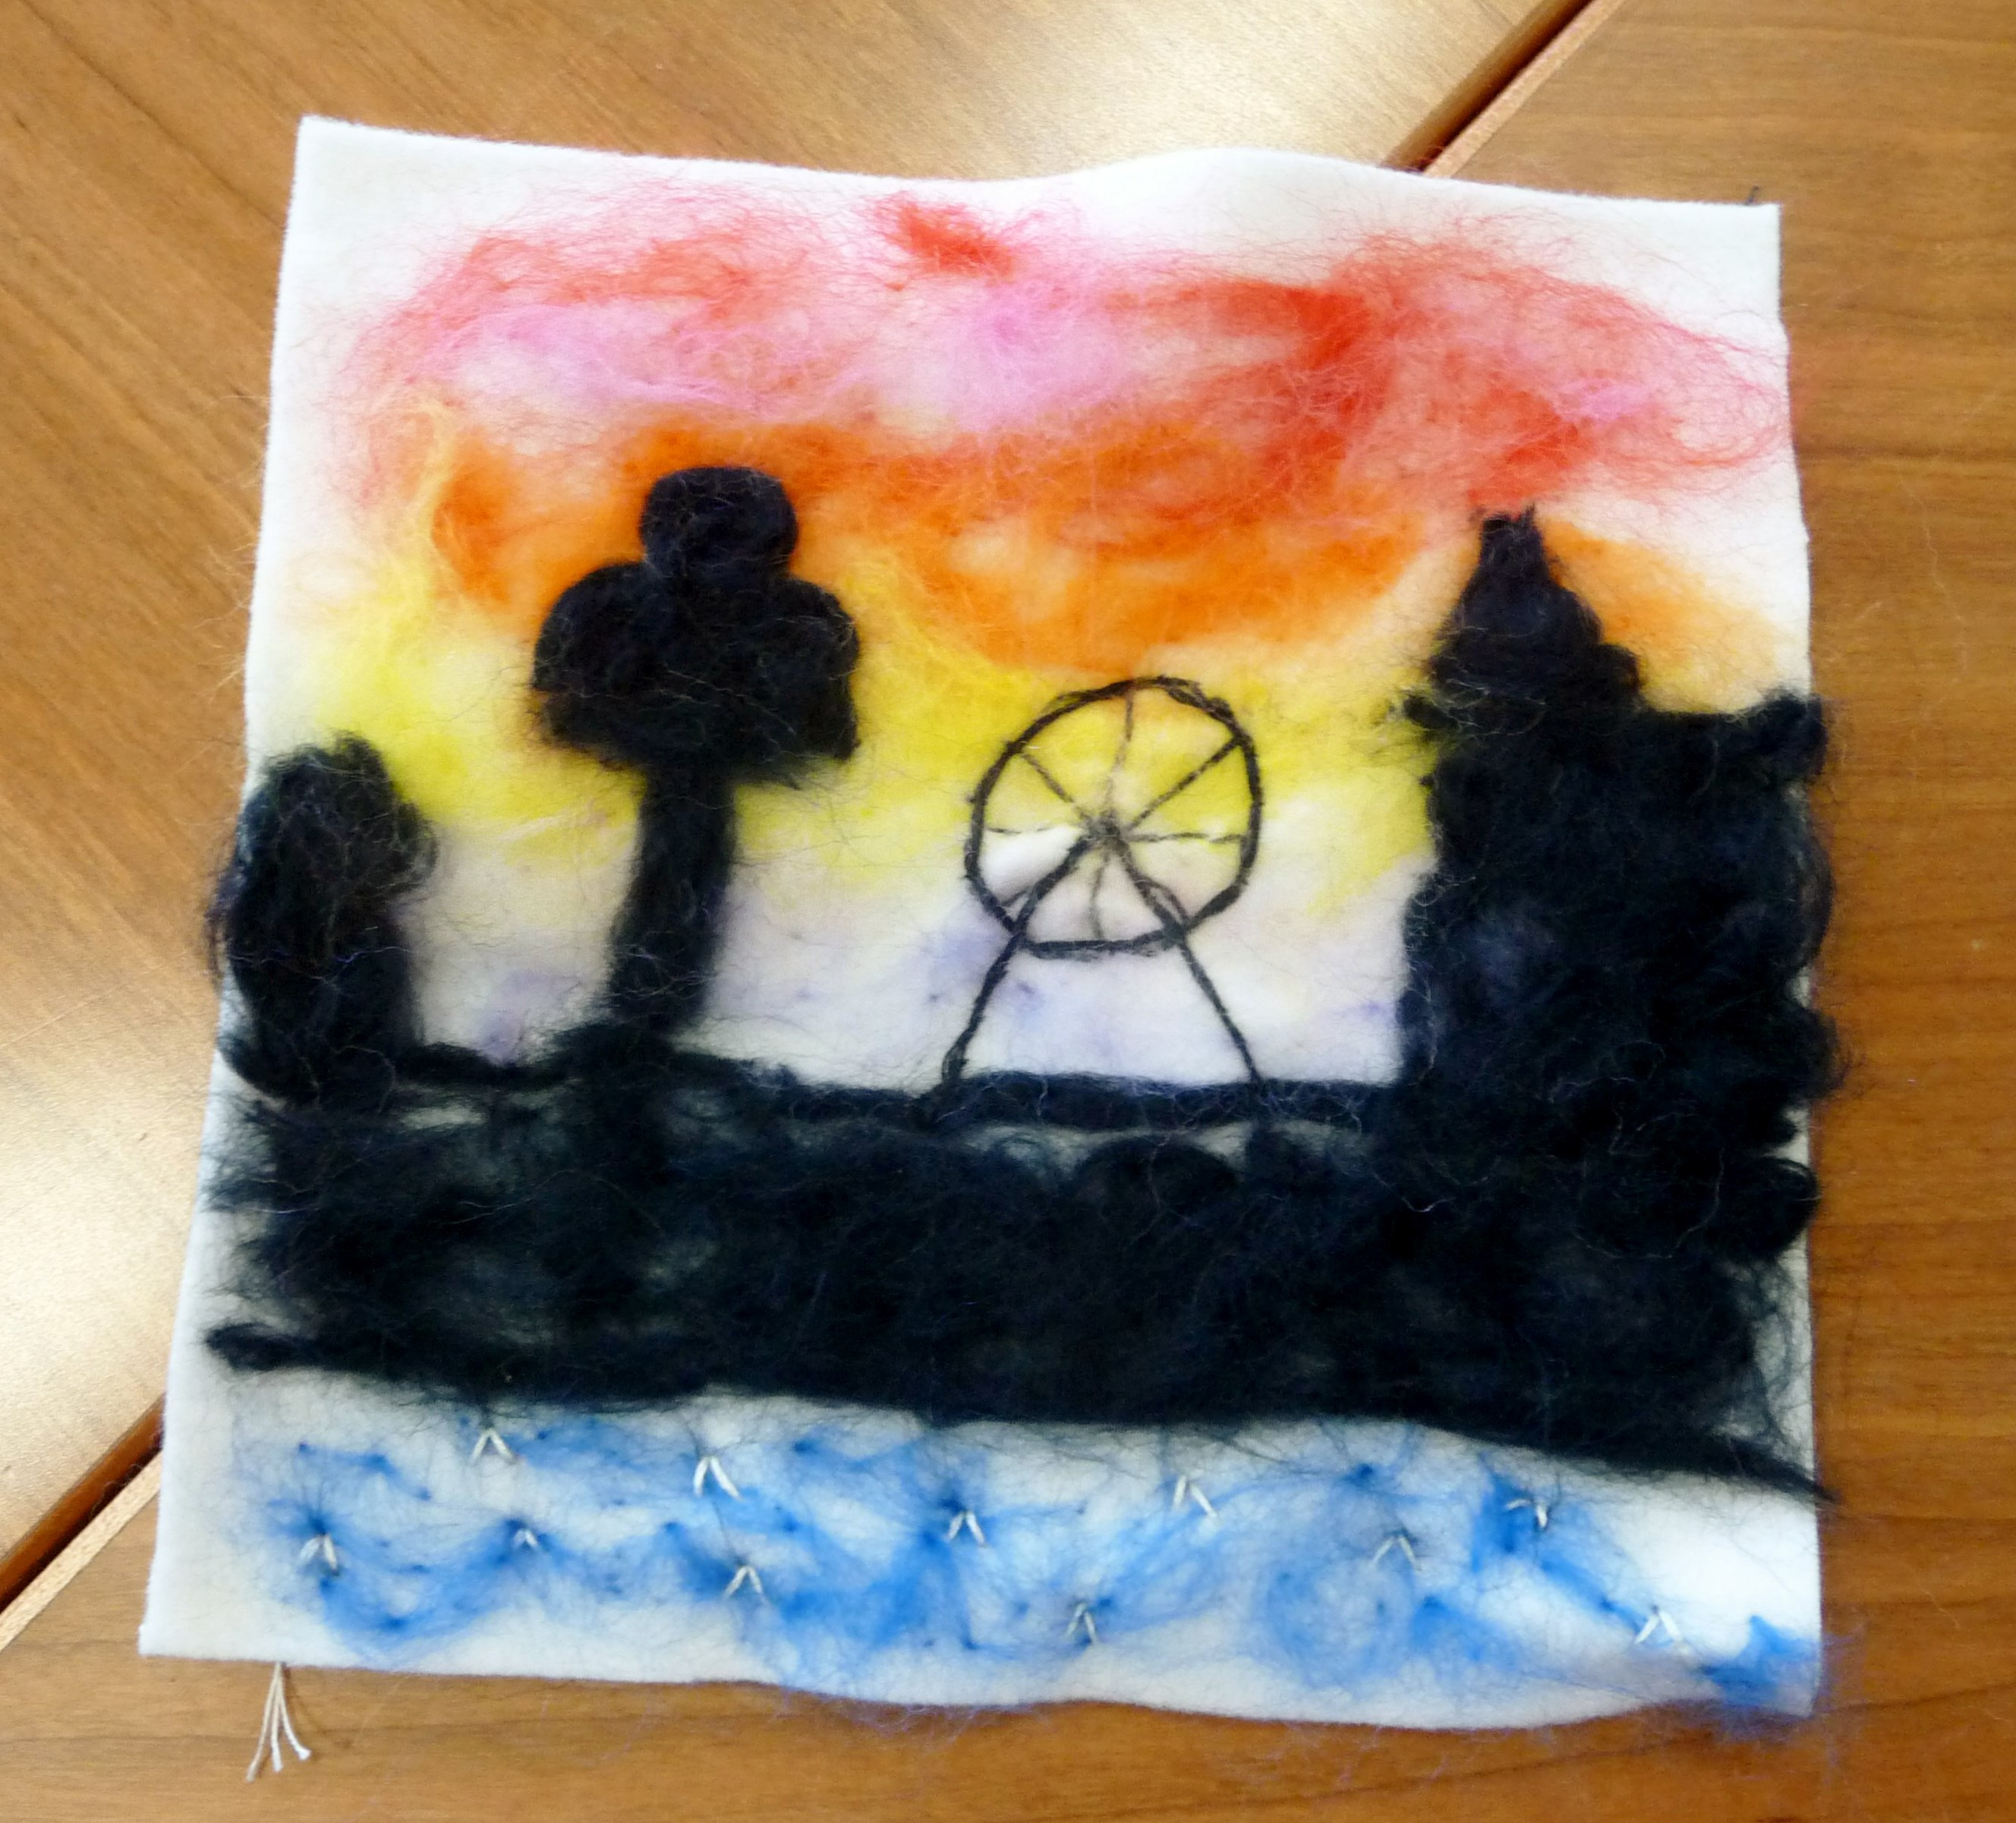 YE group May 2015. This is Zoe L's completed needlefelted landscape